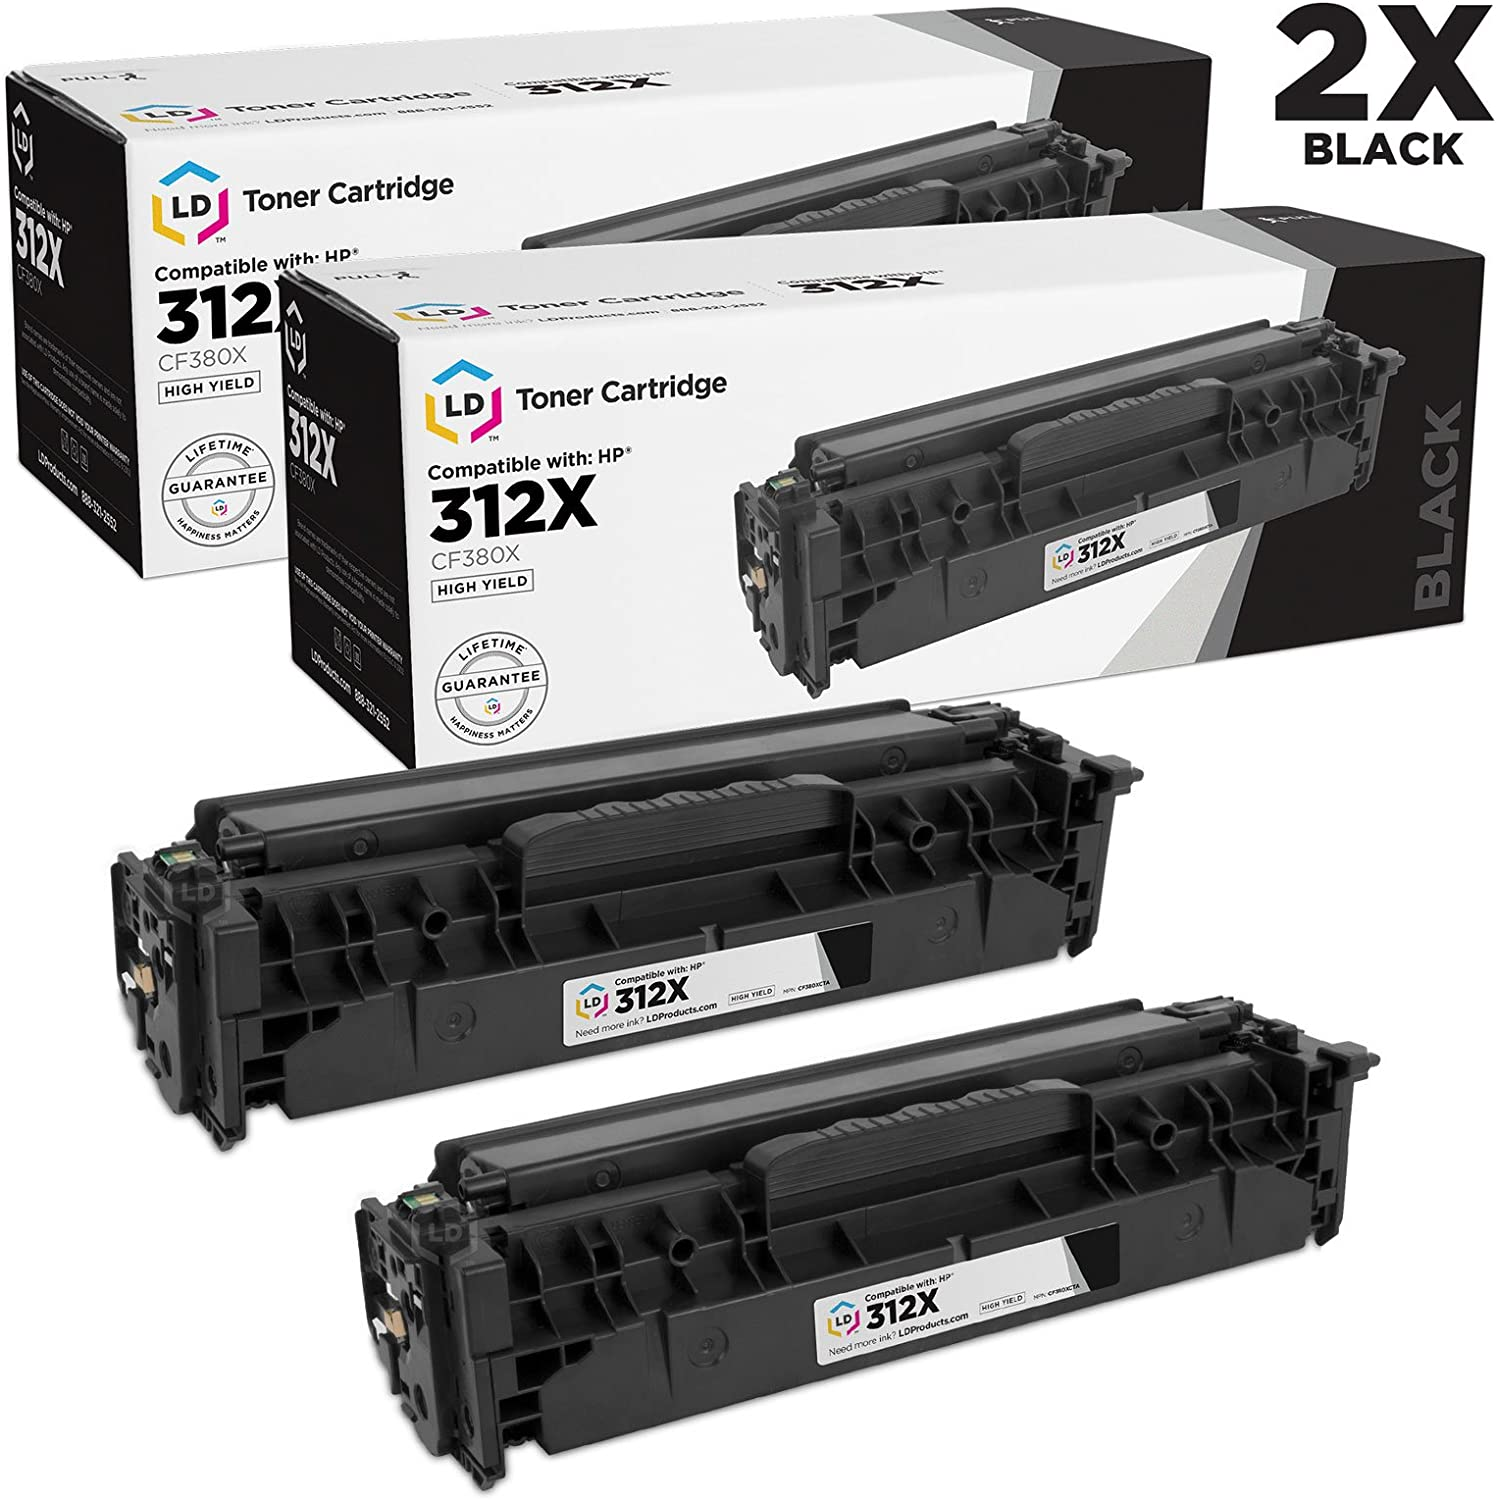 LD Remanufactured Toner Cartridge Replacement for HP 312X CF380X High Yield (Black, 2-Pack)